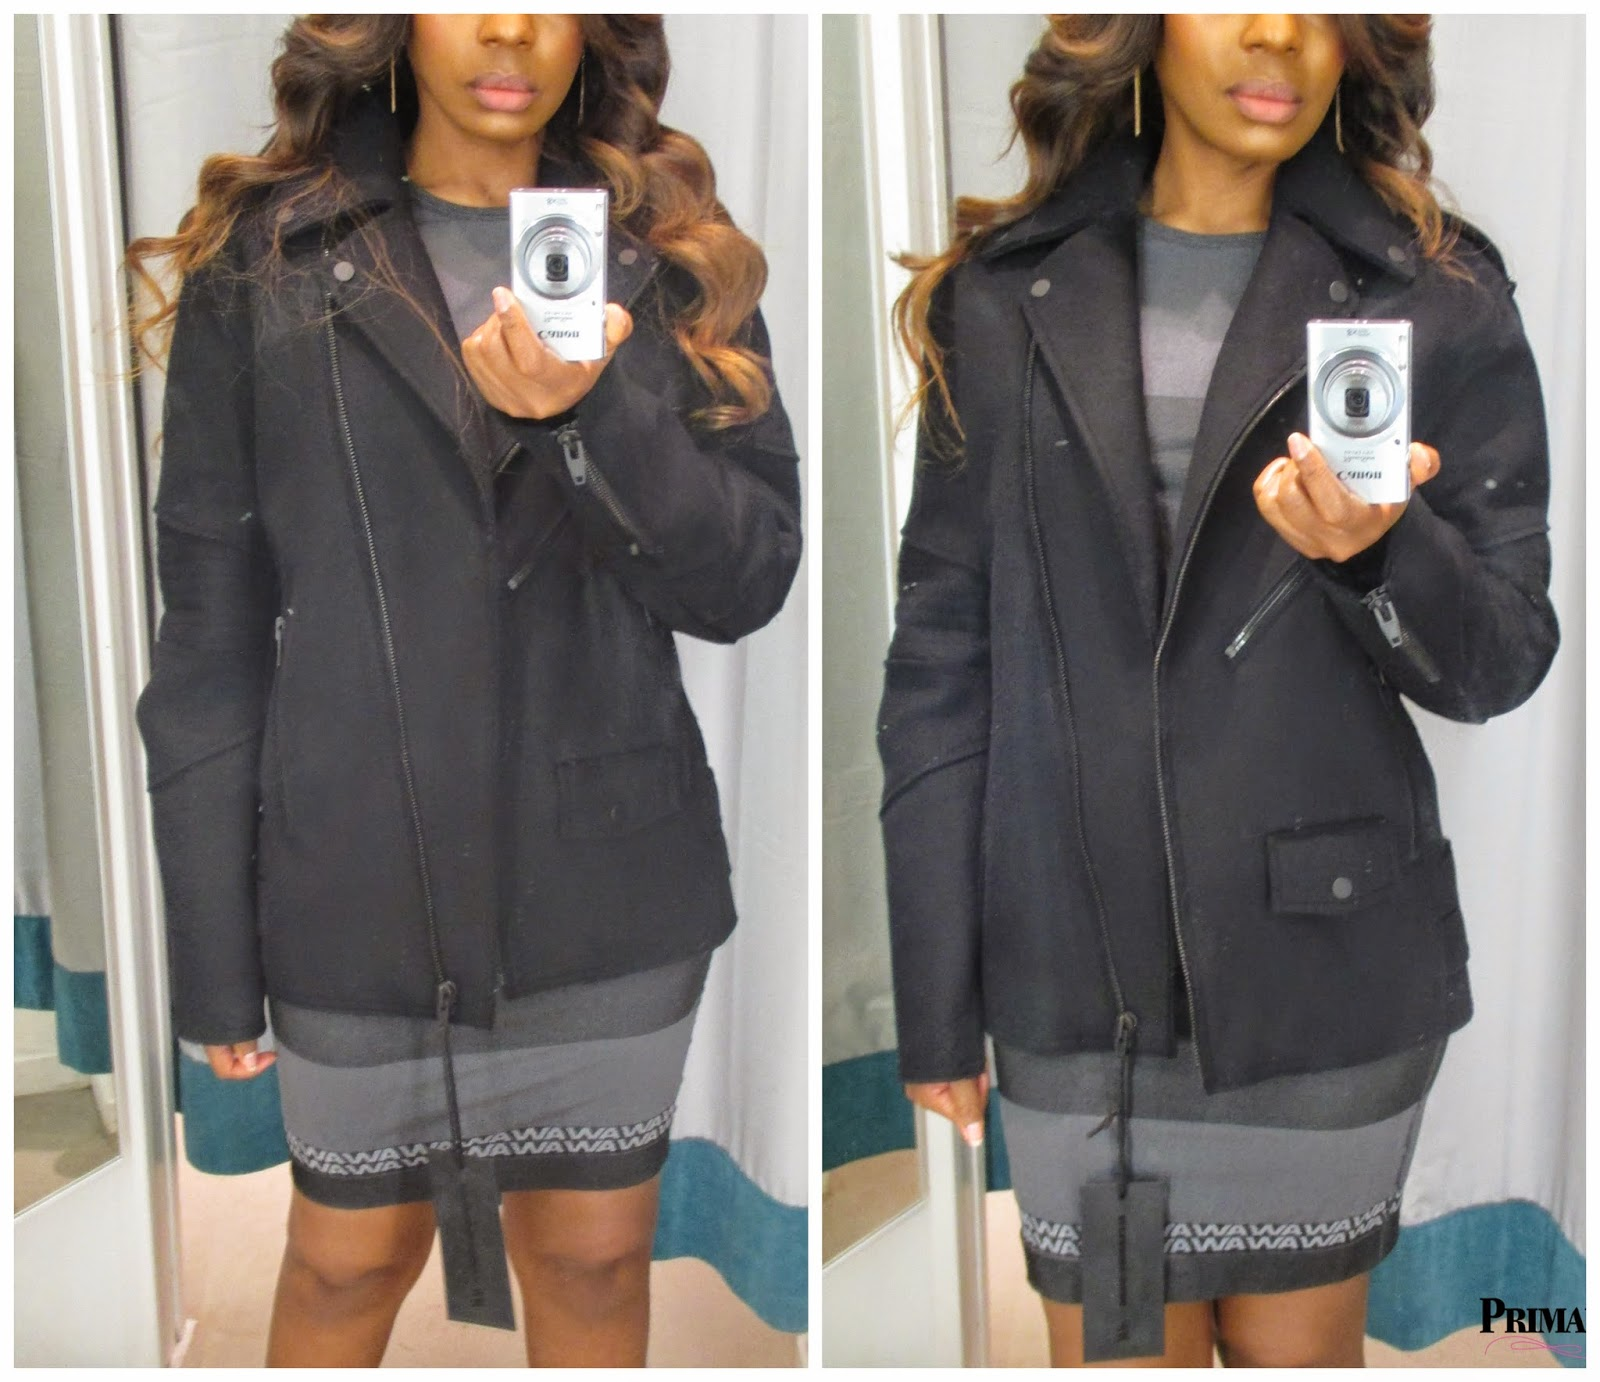 Alexander Wang for H&M Wool Blend Biker Jacket